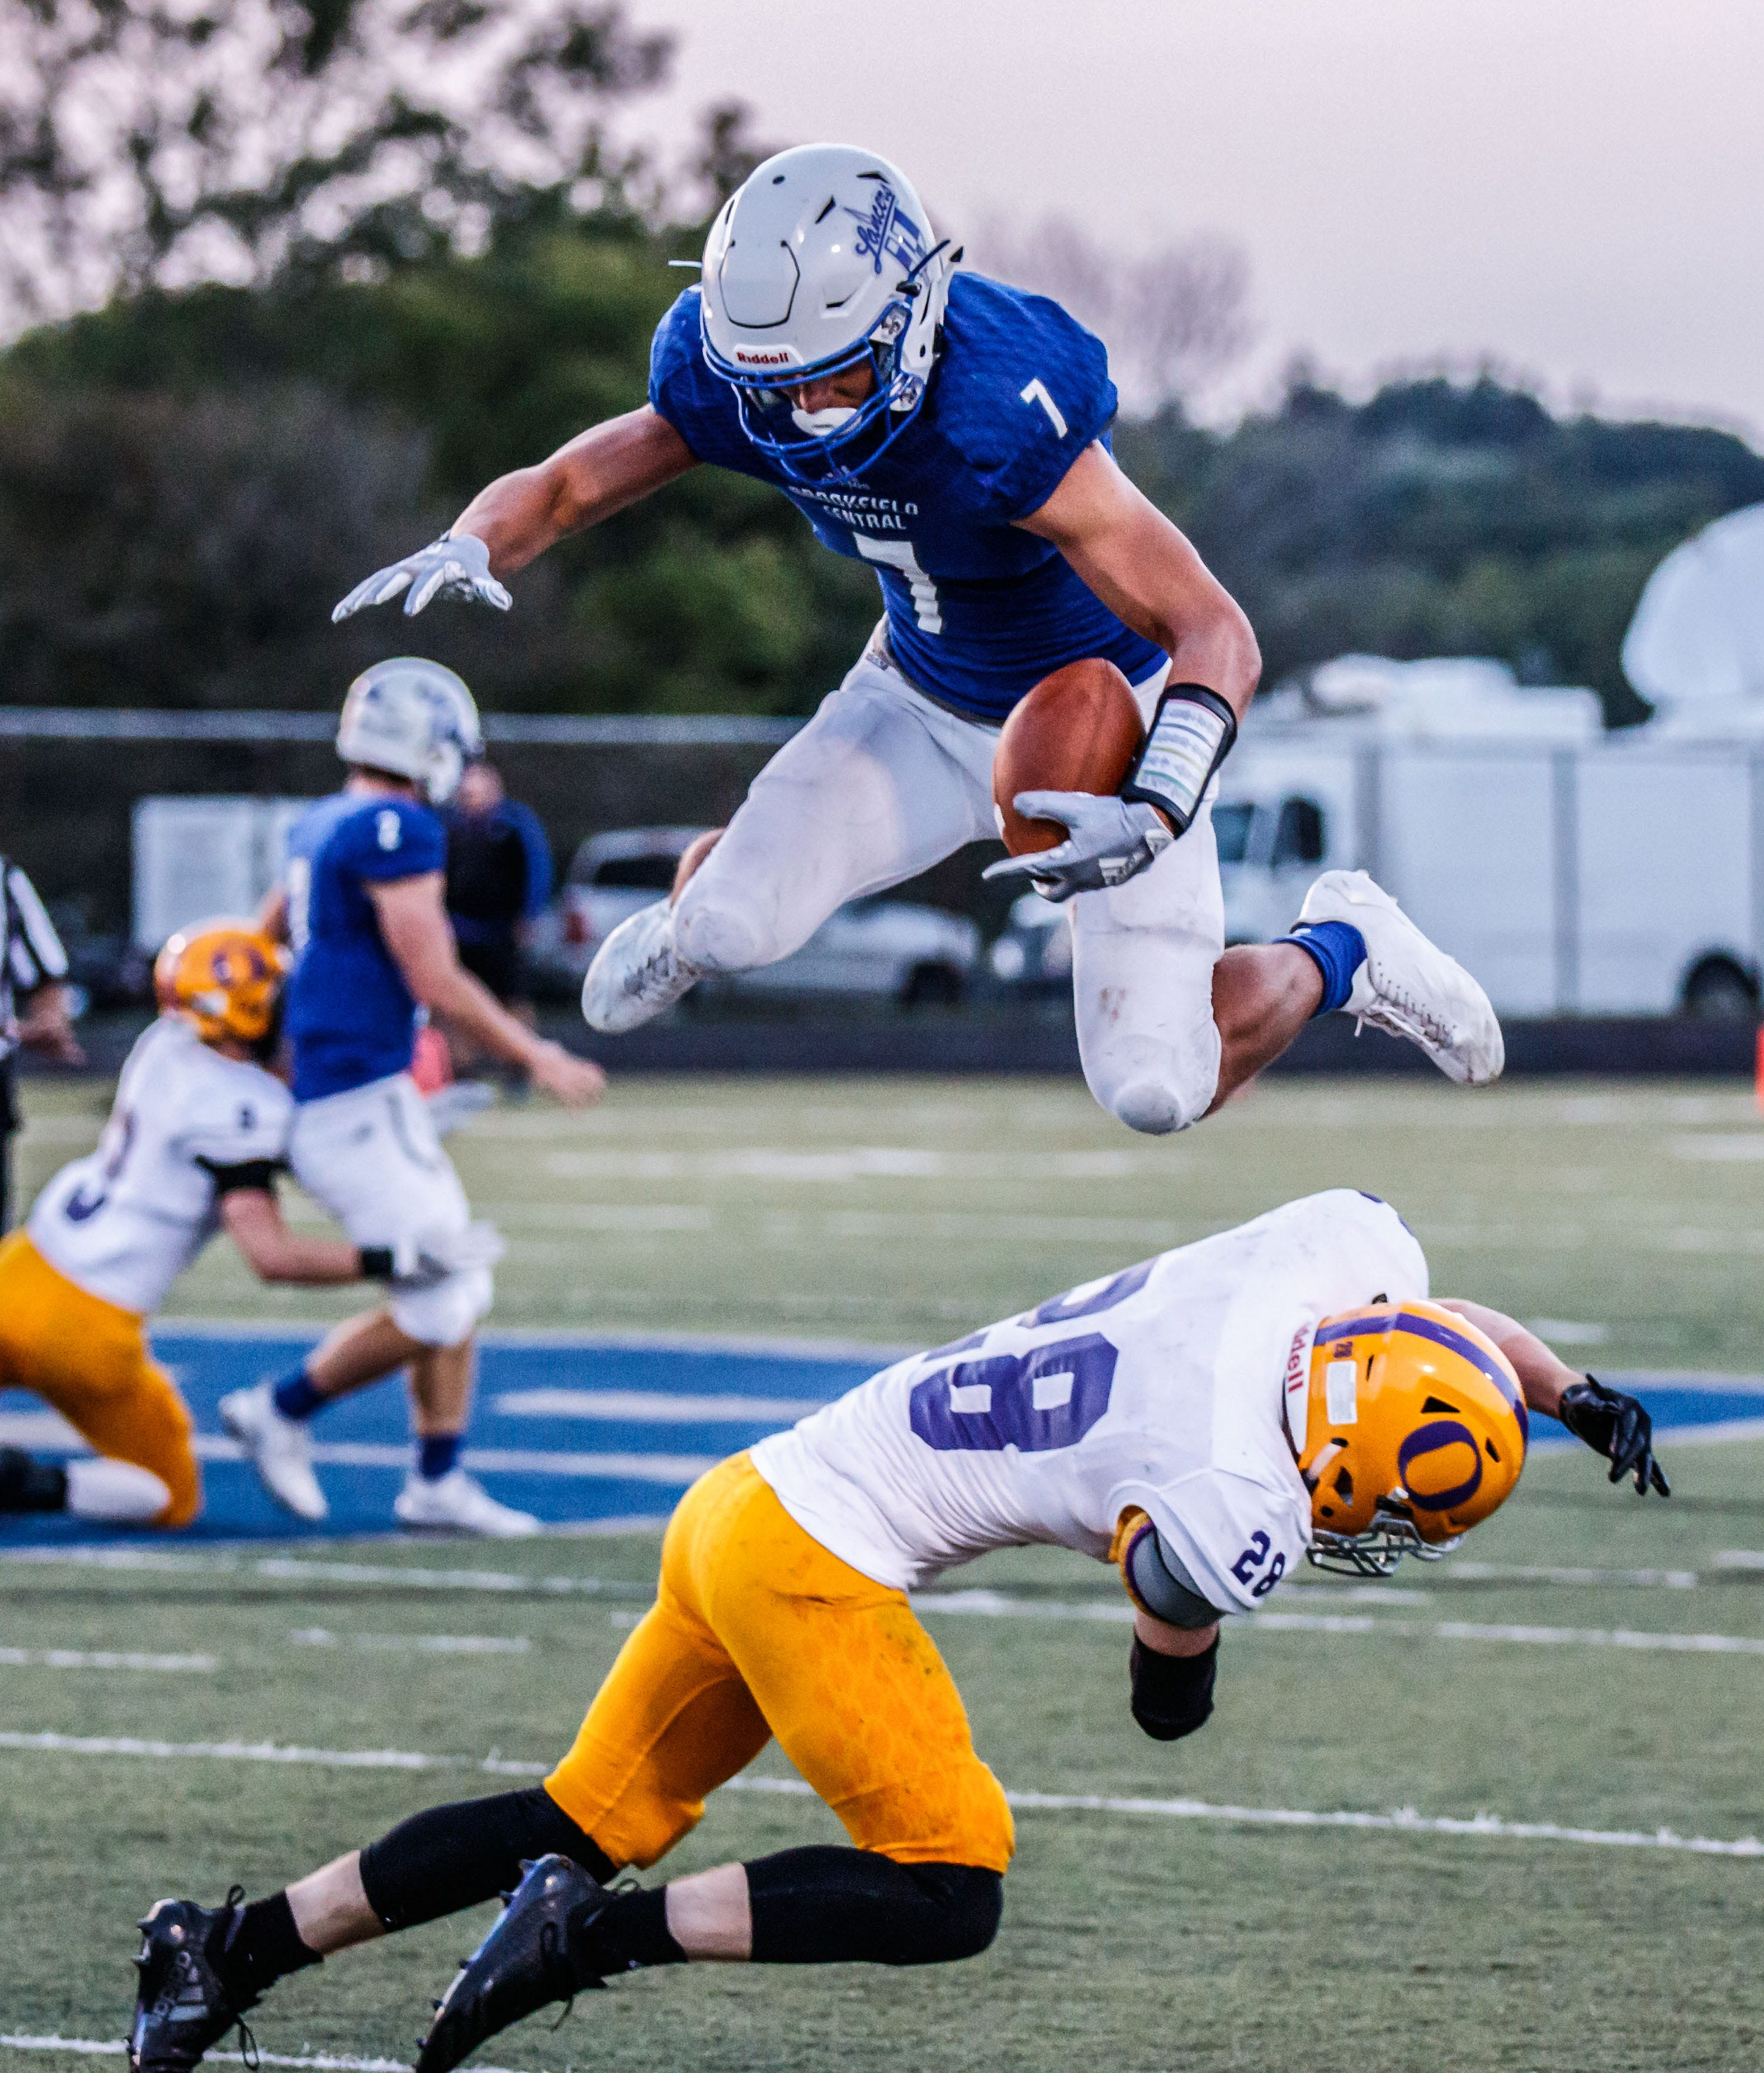 Brookfield Central wide receiver Julian Banda hurdles Oconomowoc's Conor Ellis during a game at Brookfield on Aug. 23.